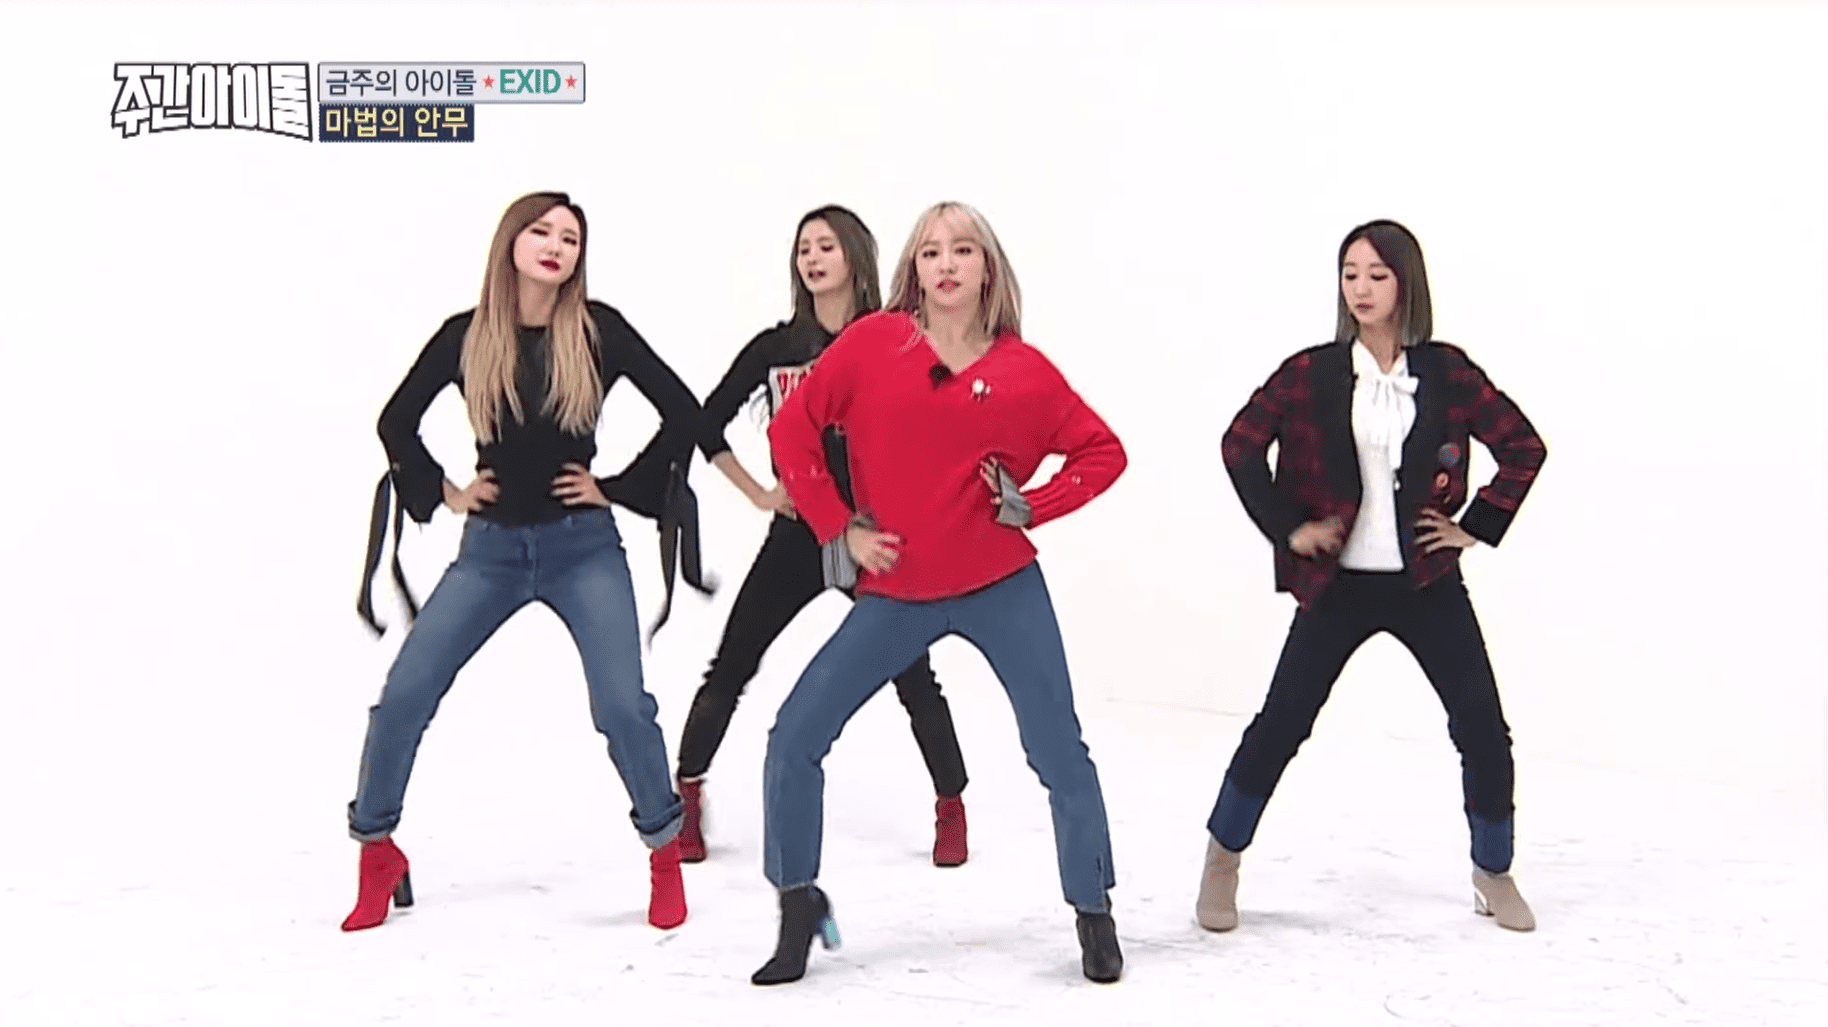 Watch: EXID Matches Their Hit Dances To Other Songs With Varying Degrees Of Success